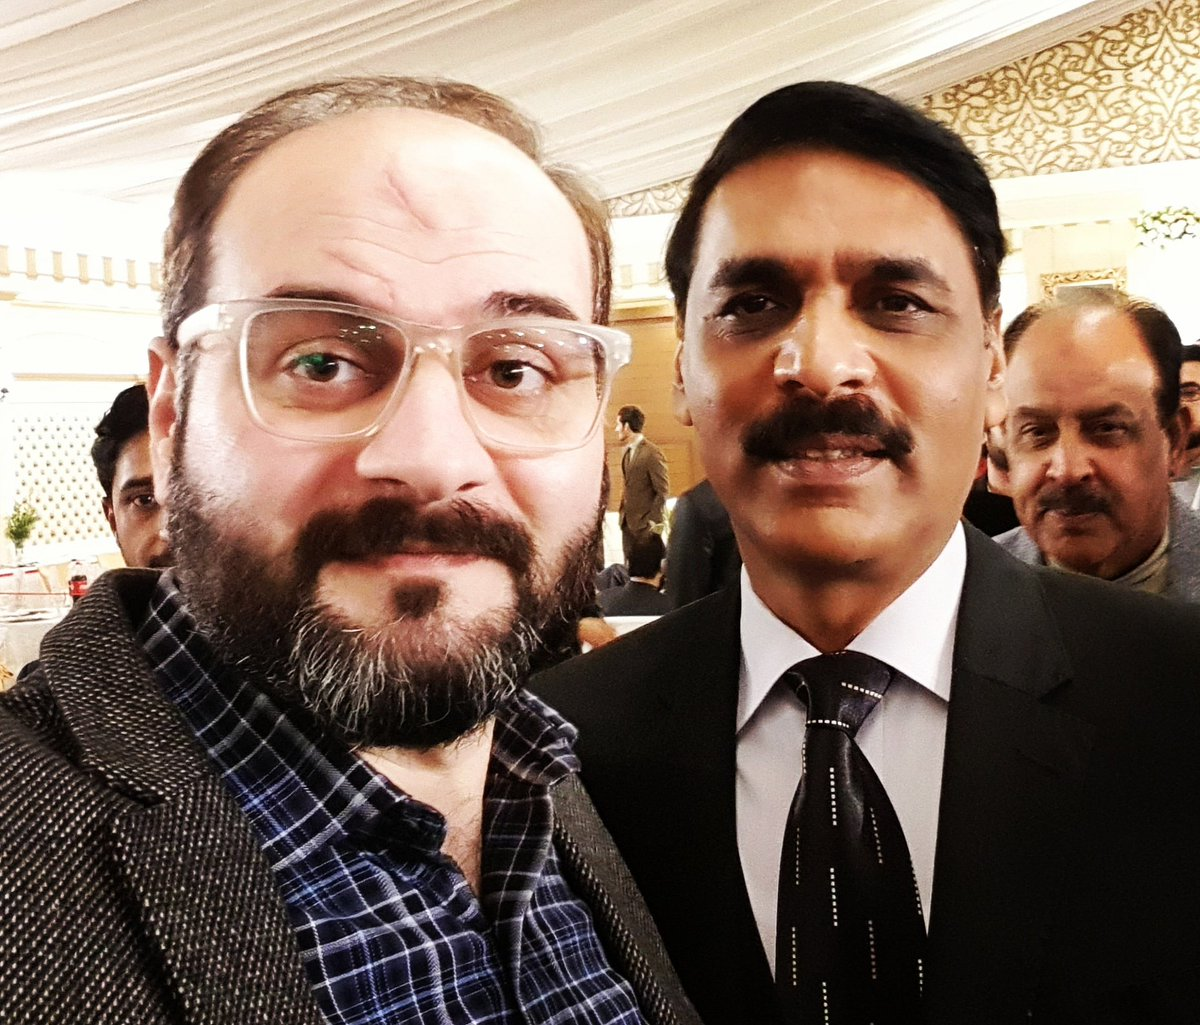 Met the media face of army & the one who has completely outclassed haters on every front. #MediaWarfare #HumblePerson #DGISPR #Pakistan #Army #Peace @peaceforchange @OfficialDGISPR